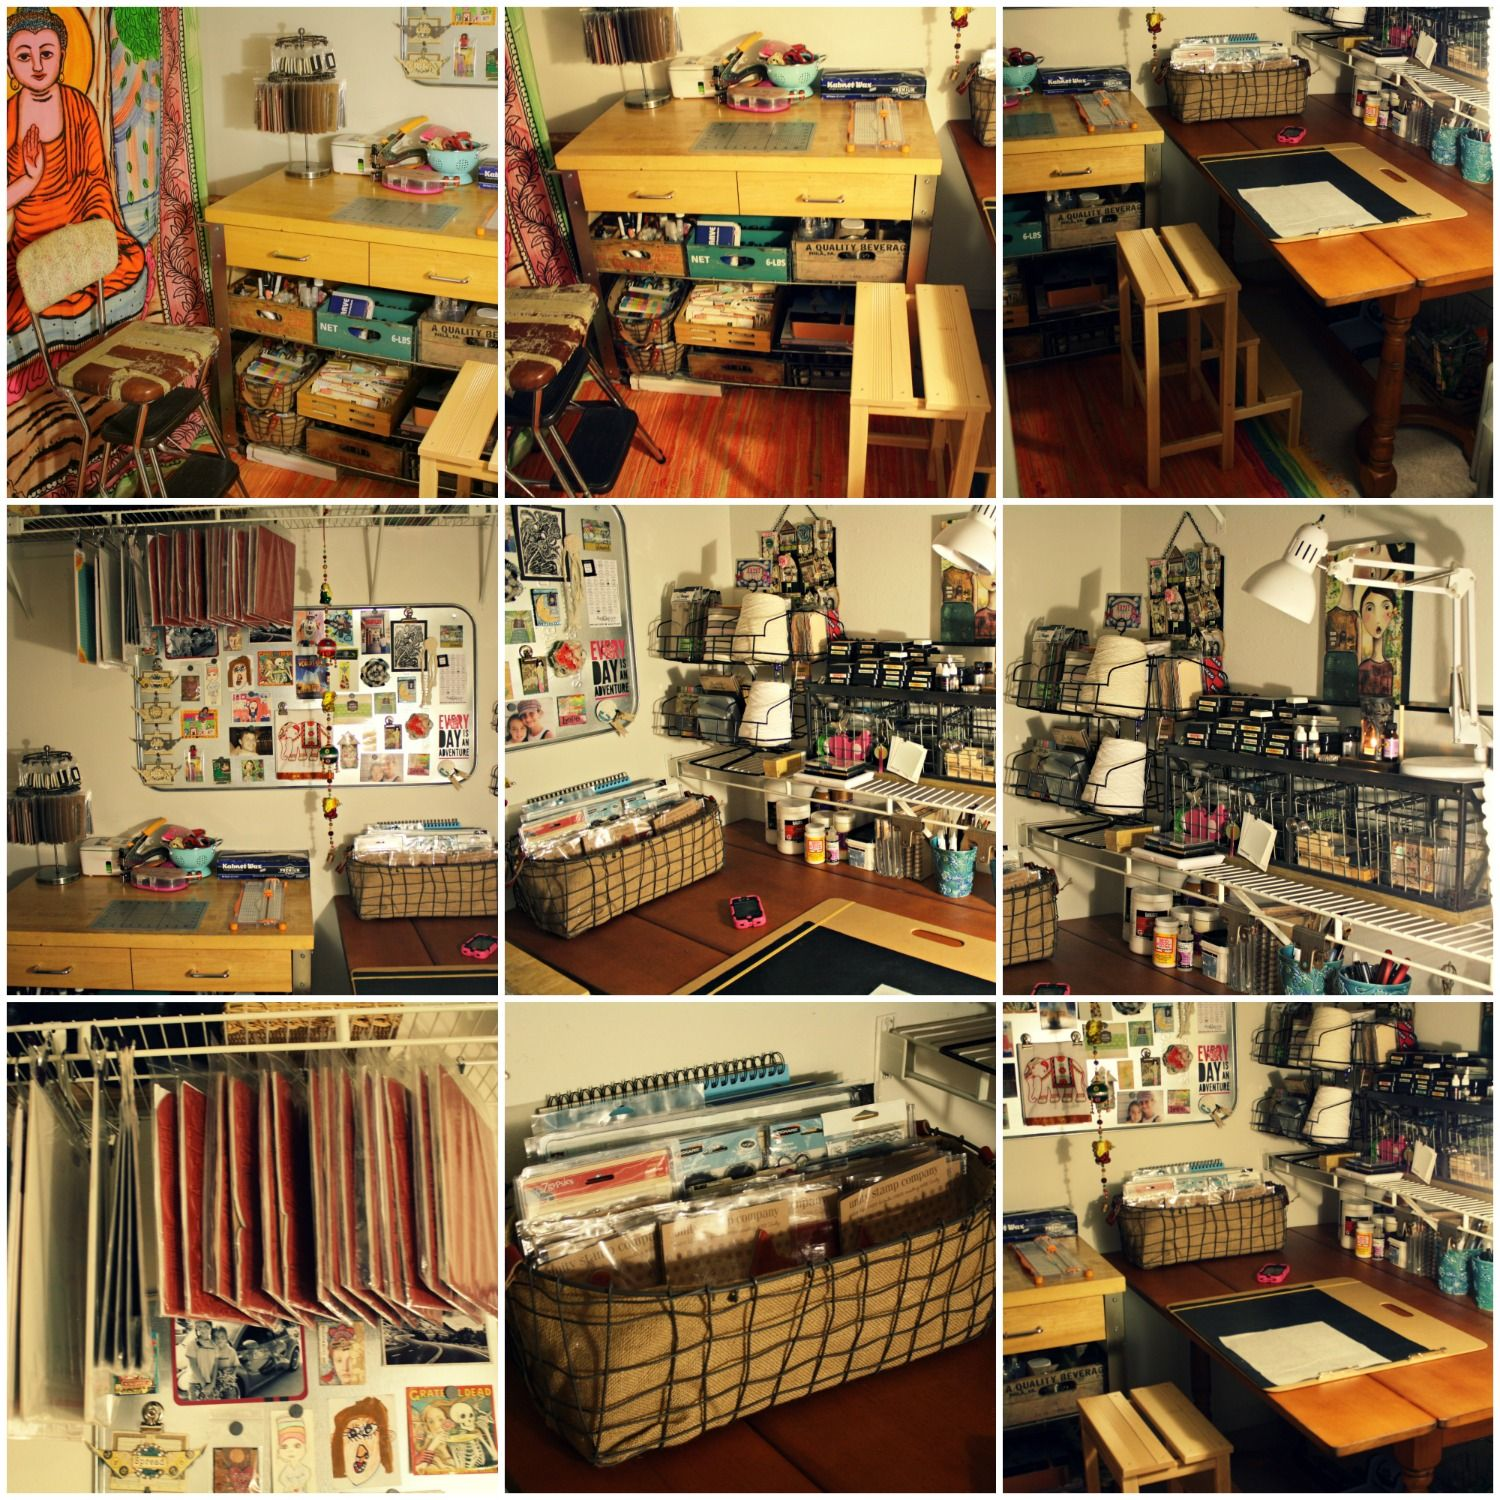 Art Craft Space In A Closet: Art Journaling, Mixed Media, Mail Art Supplies  Anization And Storage